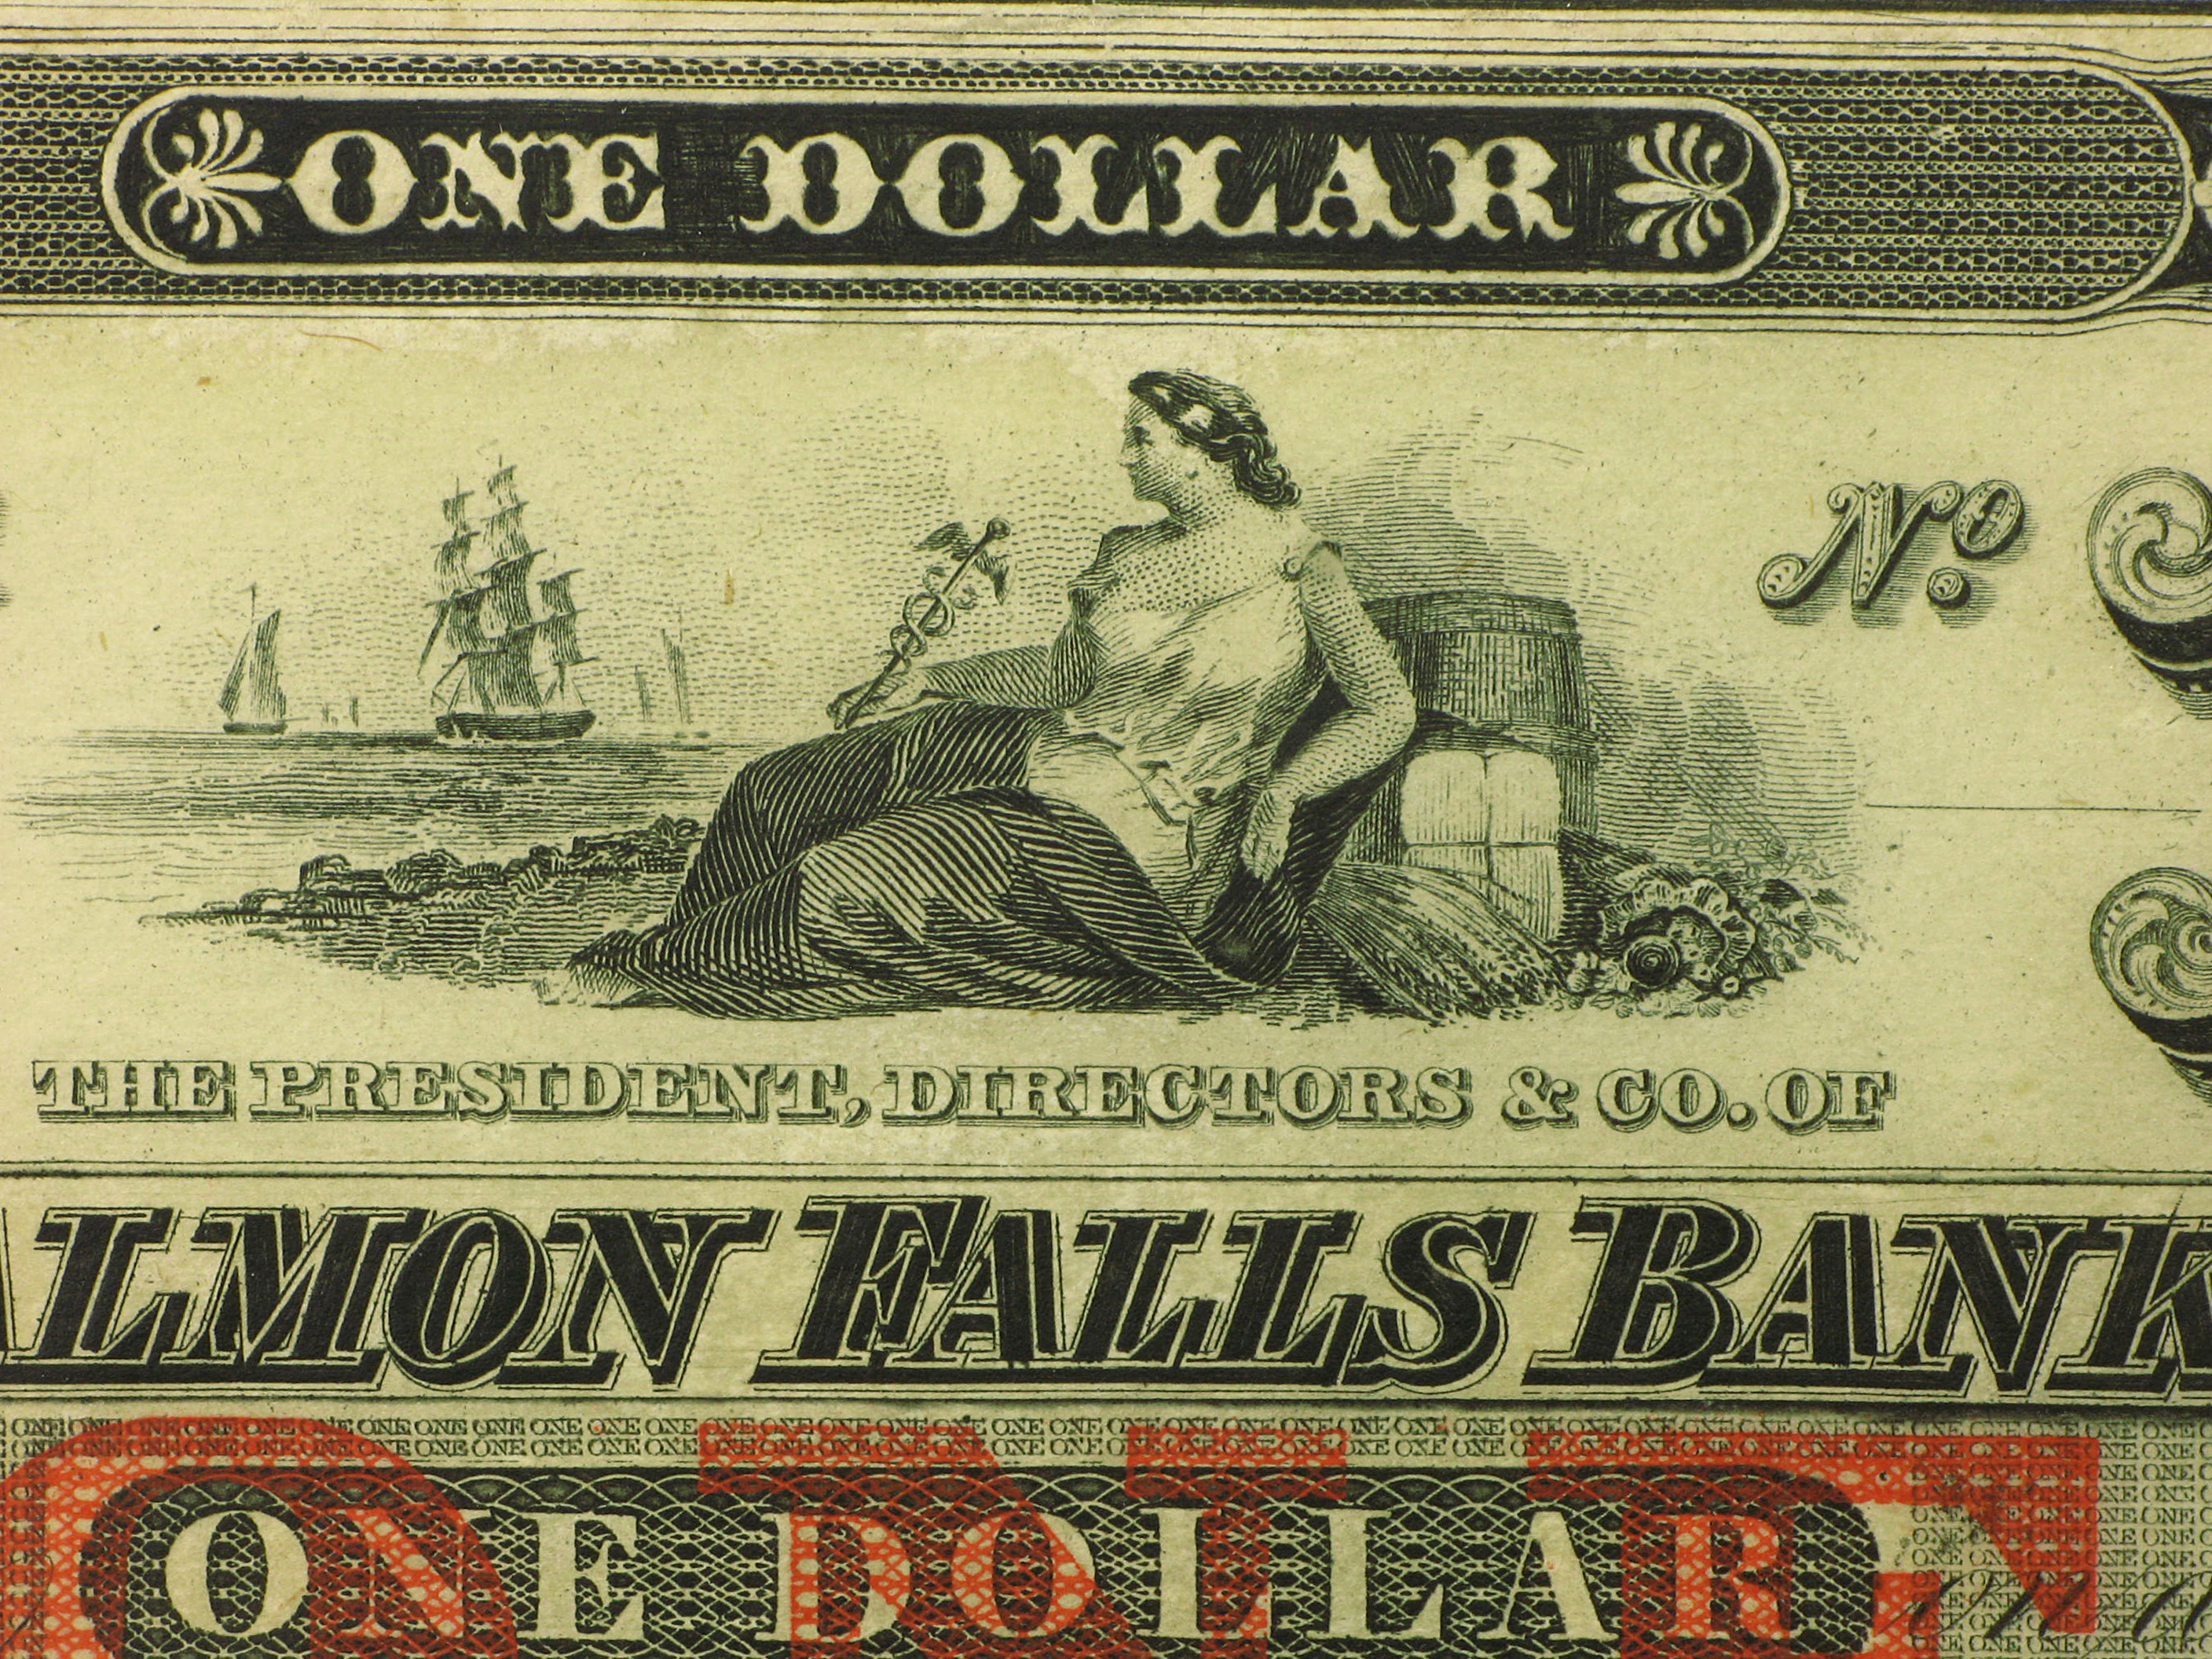 18__ Salmon Falls Bank of Rollinsford, NH $1.00 Note Ch CU